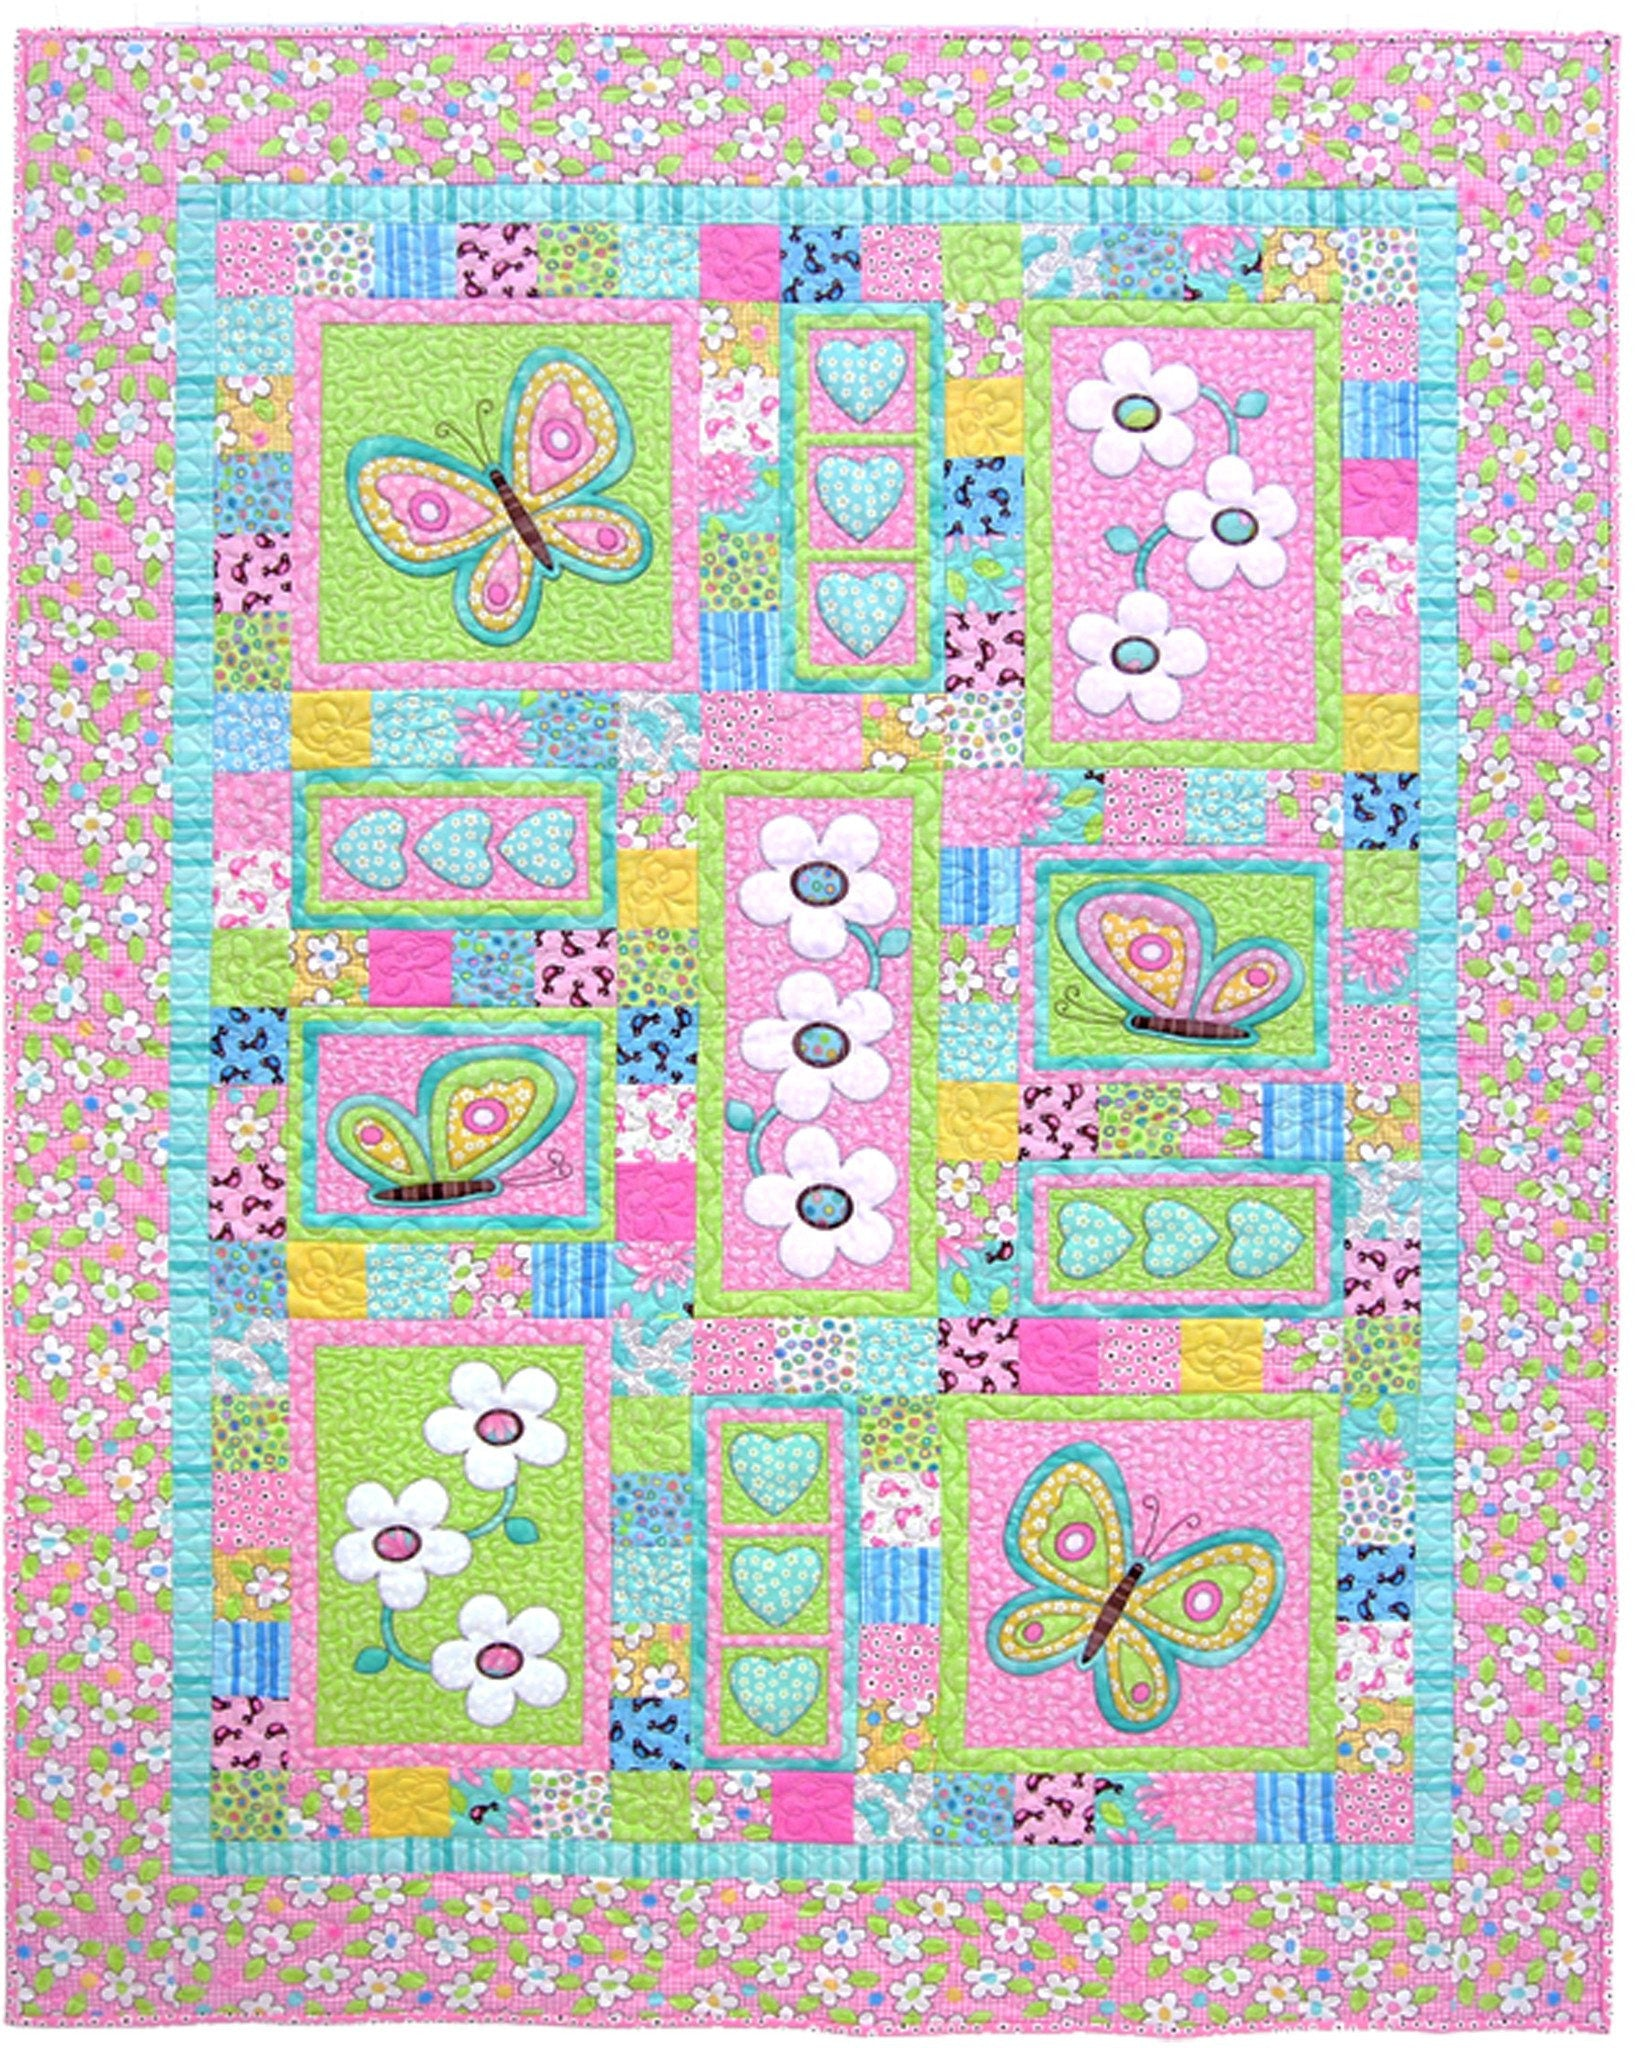 Flower Applique Quilt Patterns Unique Decoration